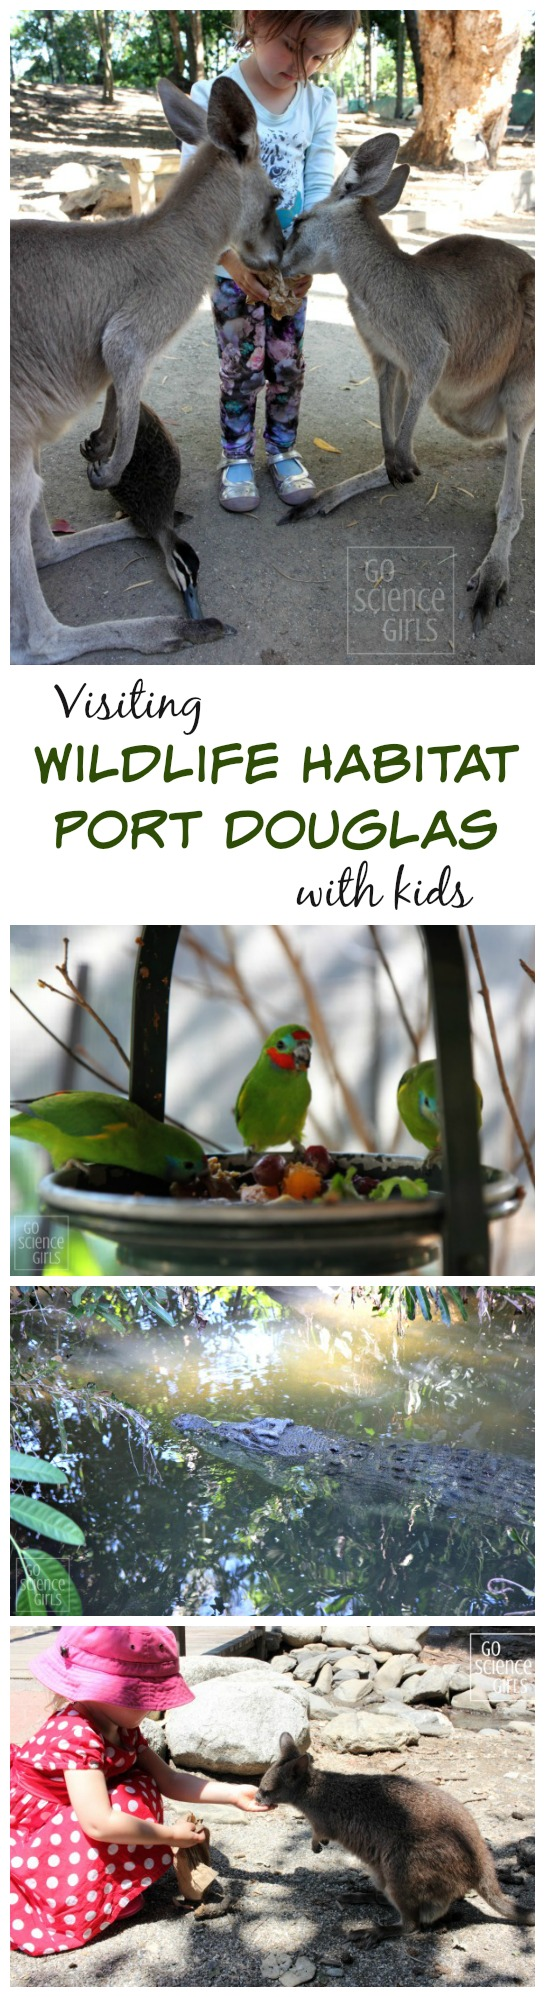 Wildlife Habitat Port Douglas - awesome way to incorporate science & nature when travelling with little kids in Australia's tropical north queensland